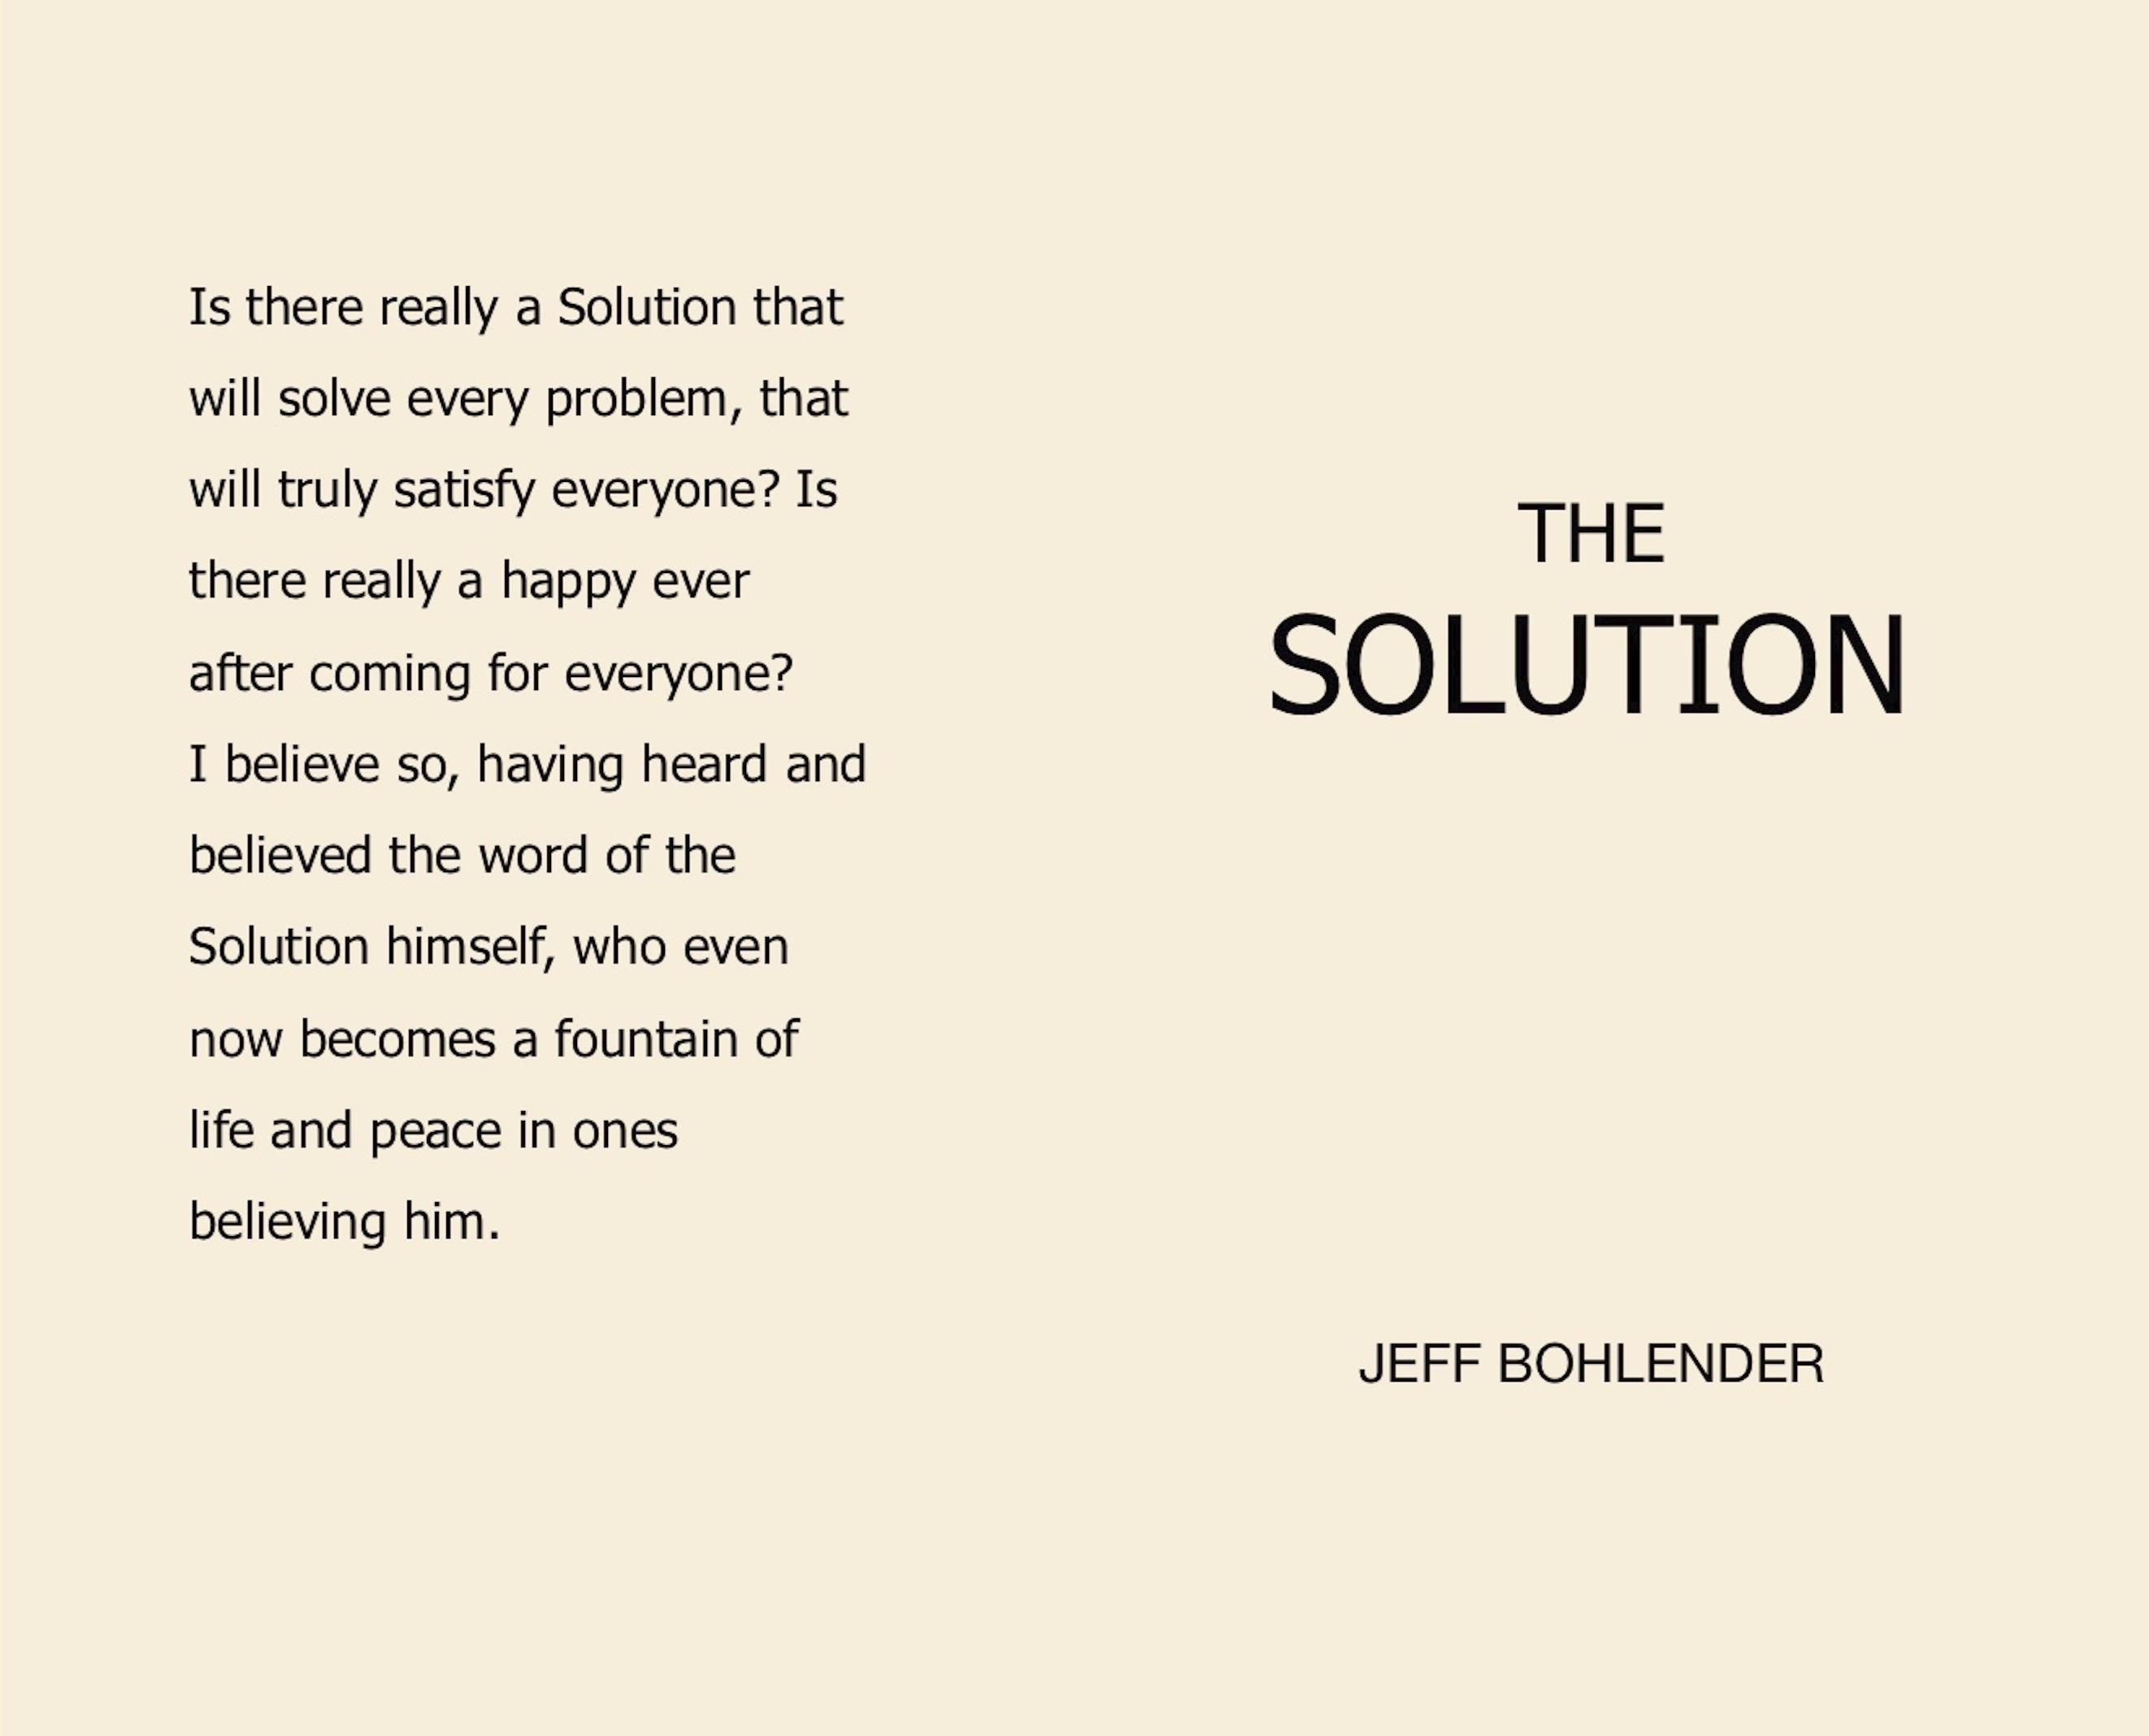 The Solution cover image